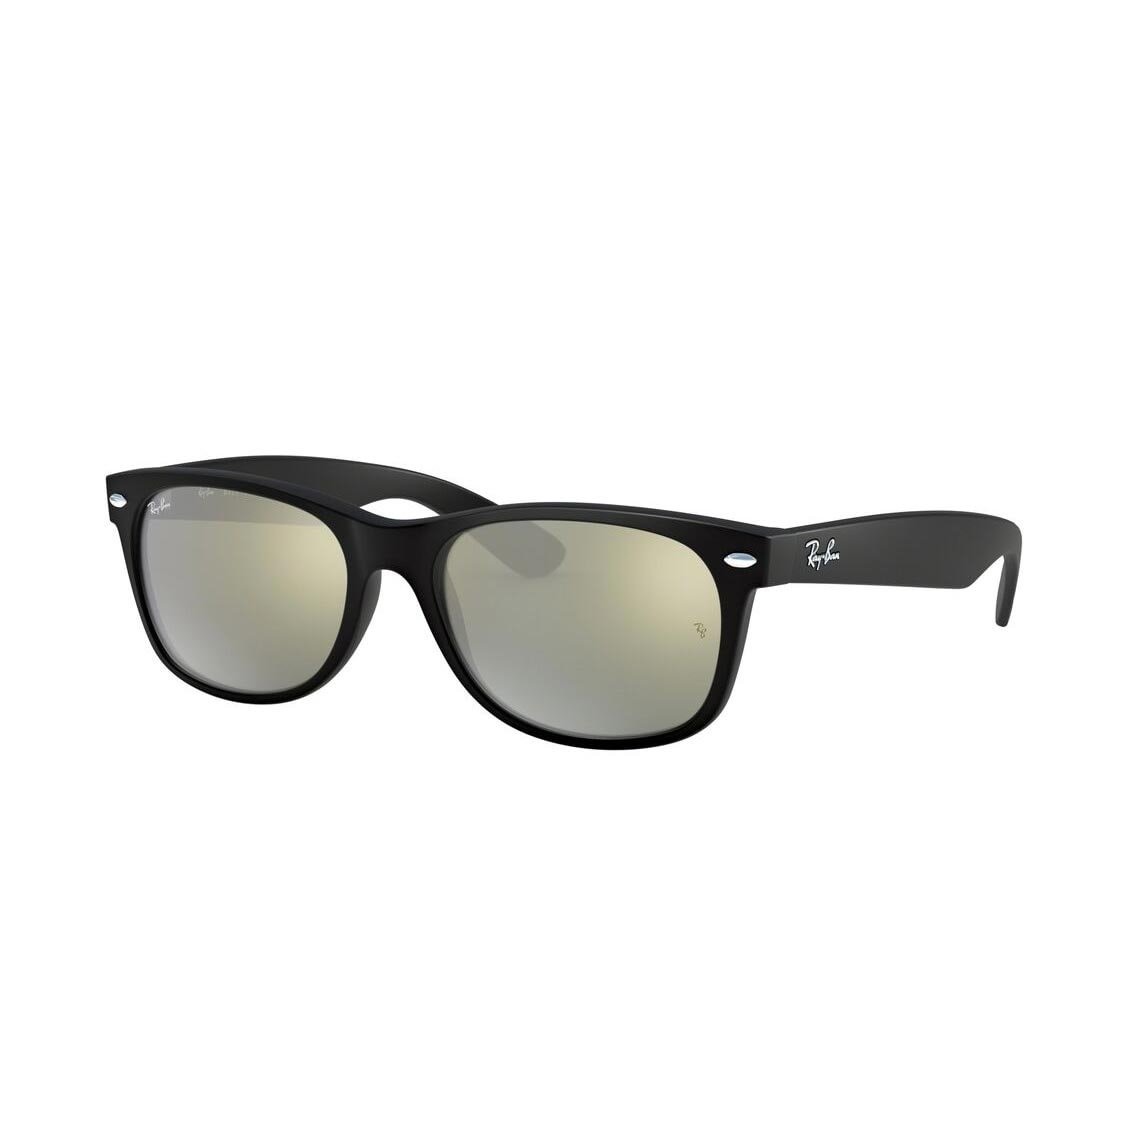 Ray-Ban New Wayfarer RB2132 622/30 55